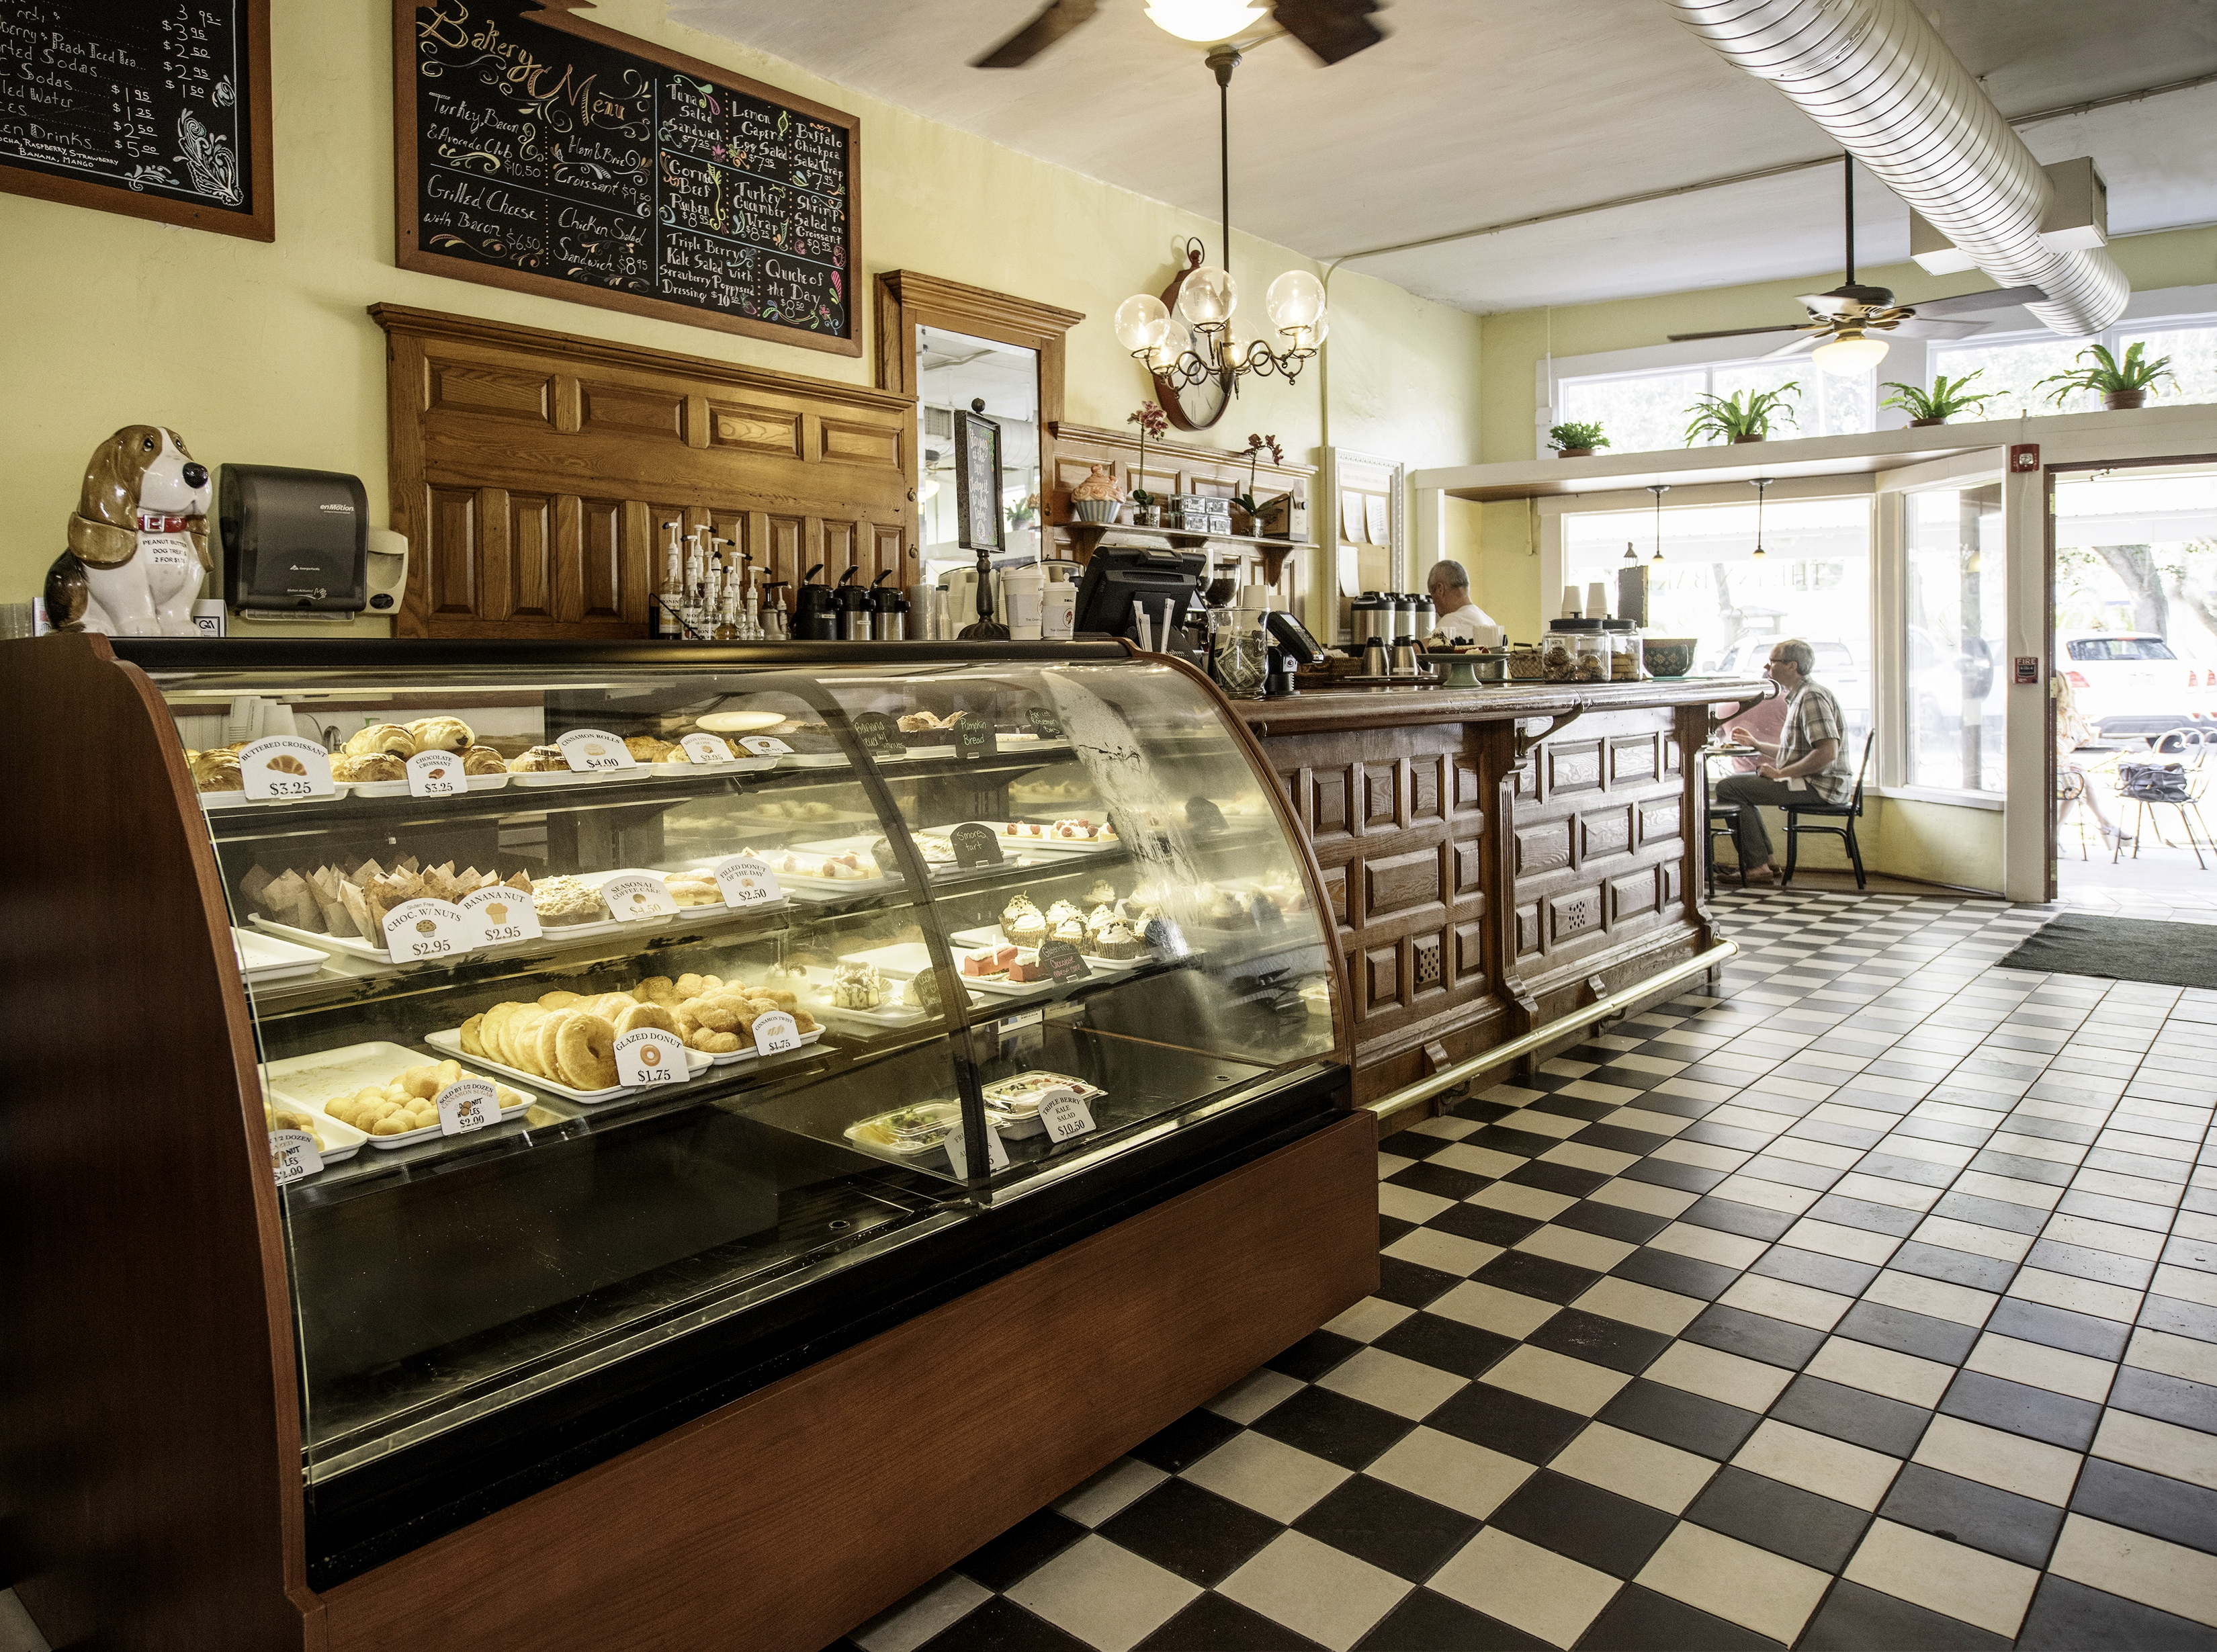 Bakery interior with pastries